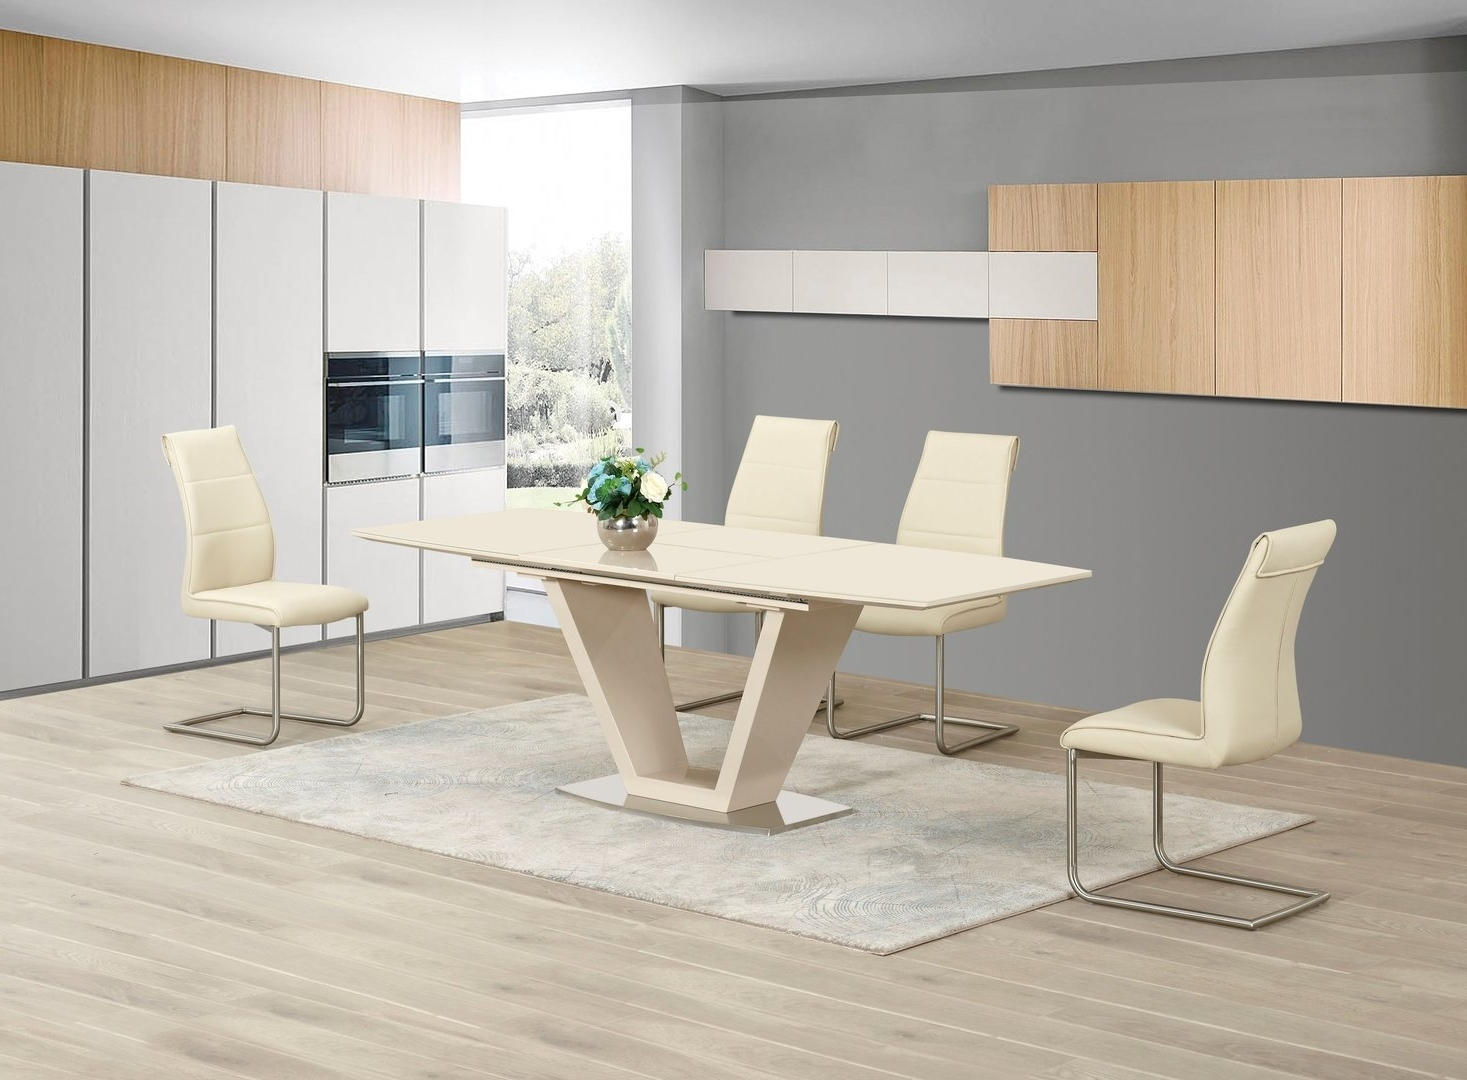 Most Recently Released Extending Dining Tables And 8 Chairs Pertaining To Extending Cream Glass High Gloss Dining Table And 8 Cream Chairs (View 16 of 25)